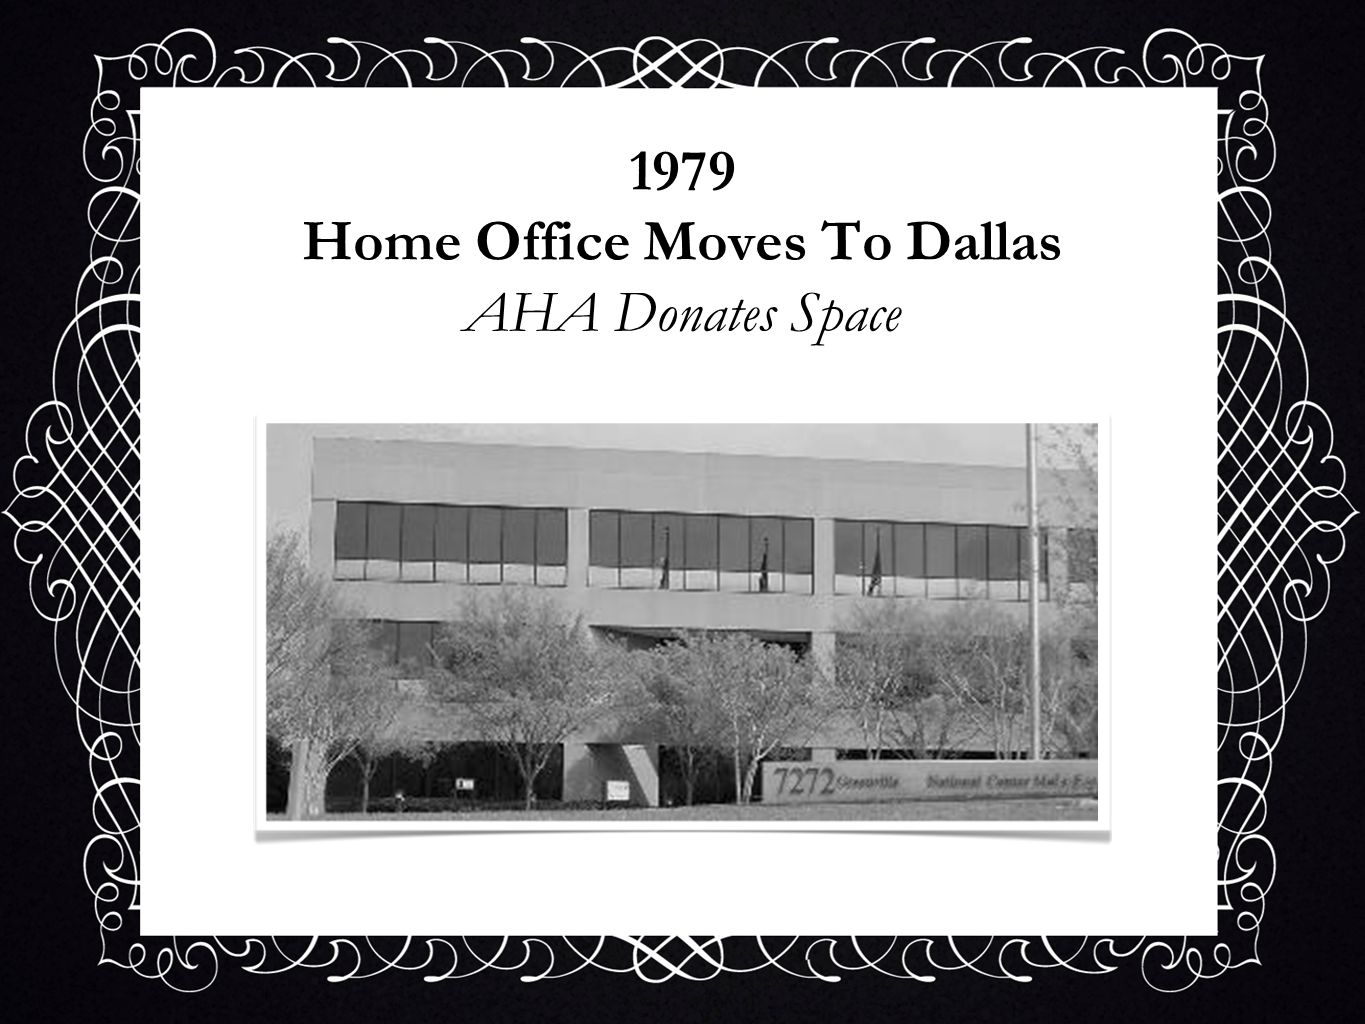 1979 Home Office Moves To Dallas AHA Donates Space